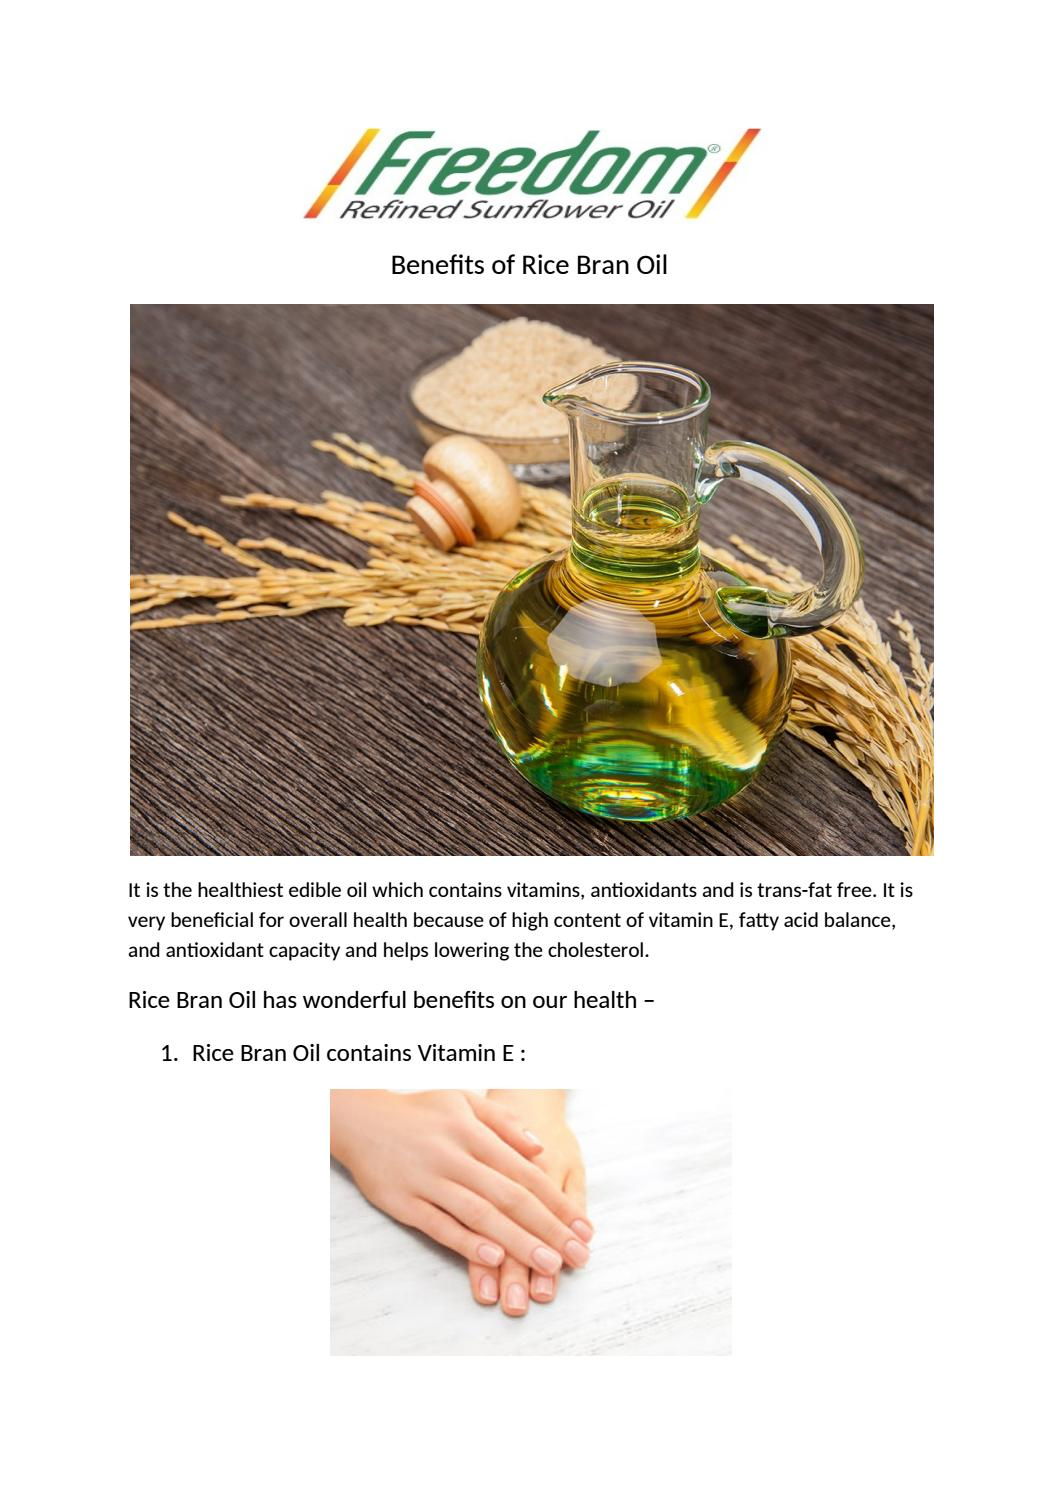 Benefits of rice bran oil by Freedom Healthy Oil - issuu